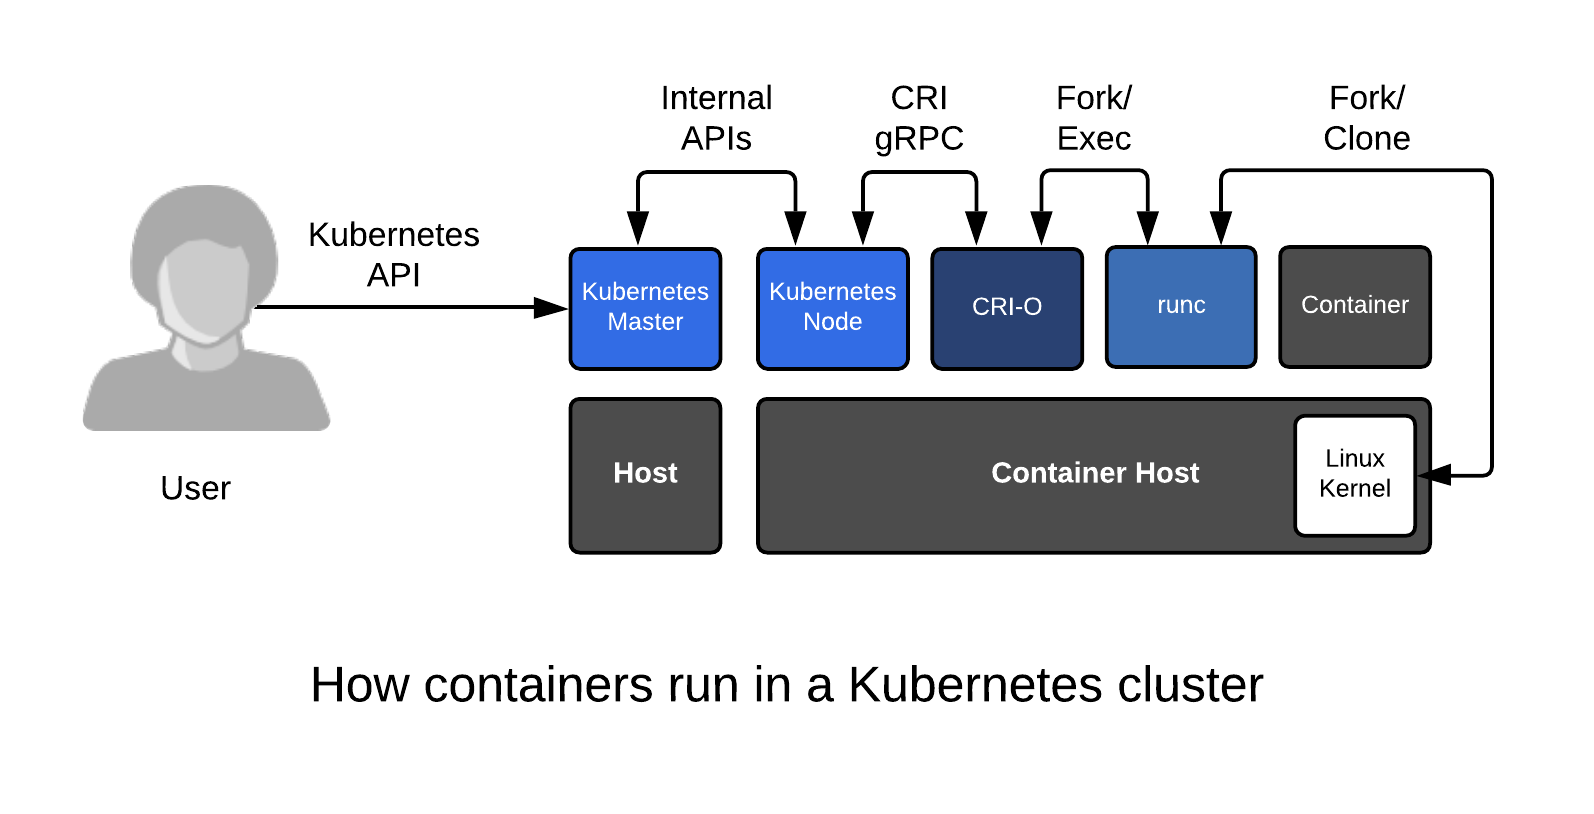 How containers run in a kubernetes cluster